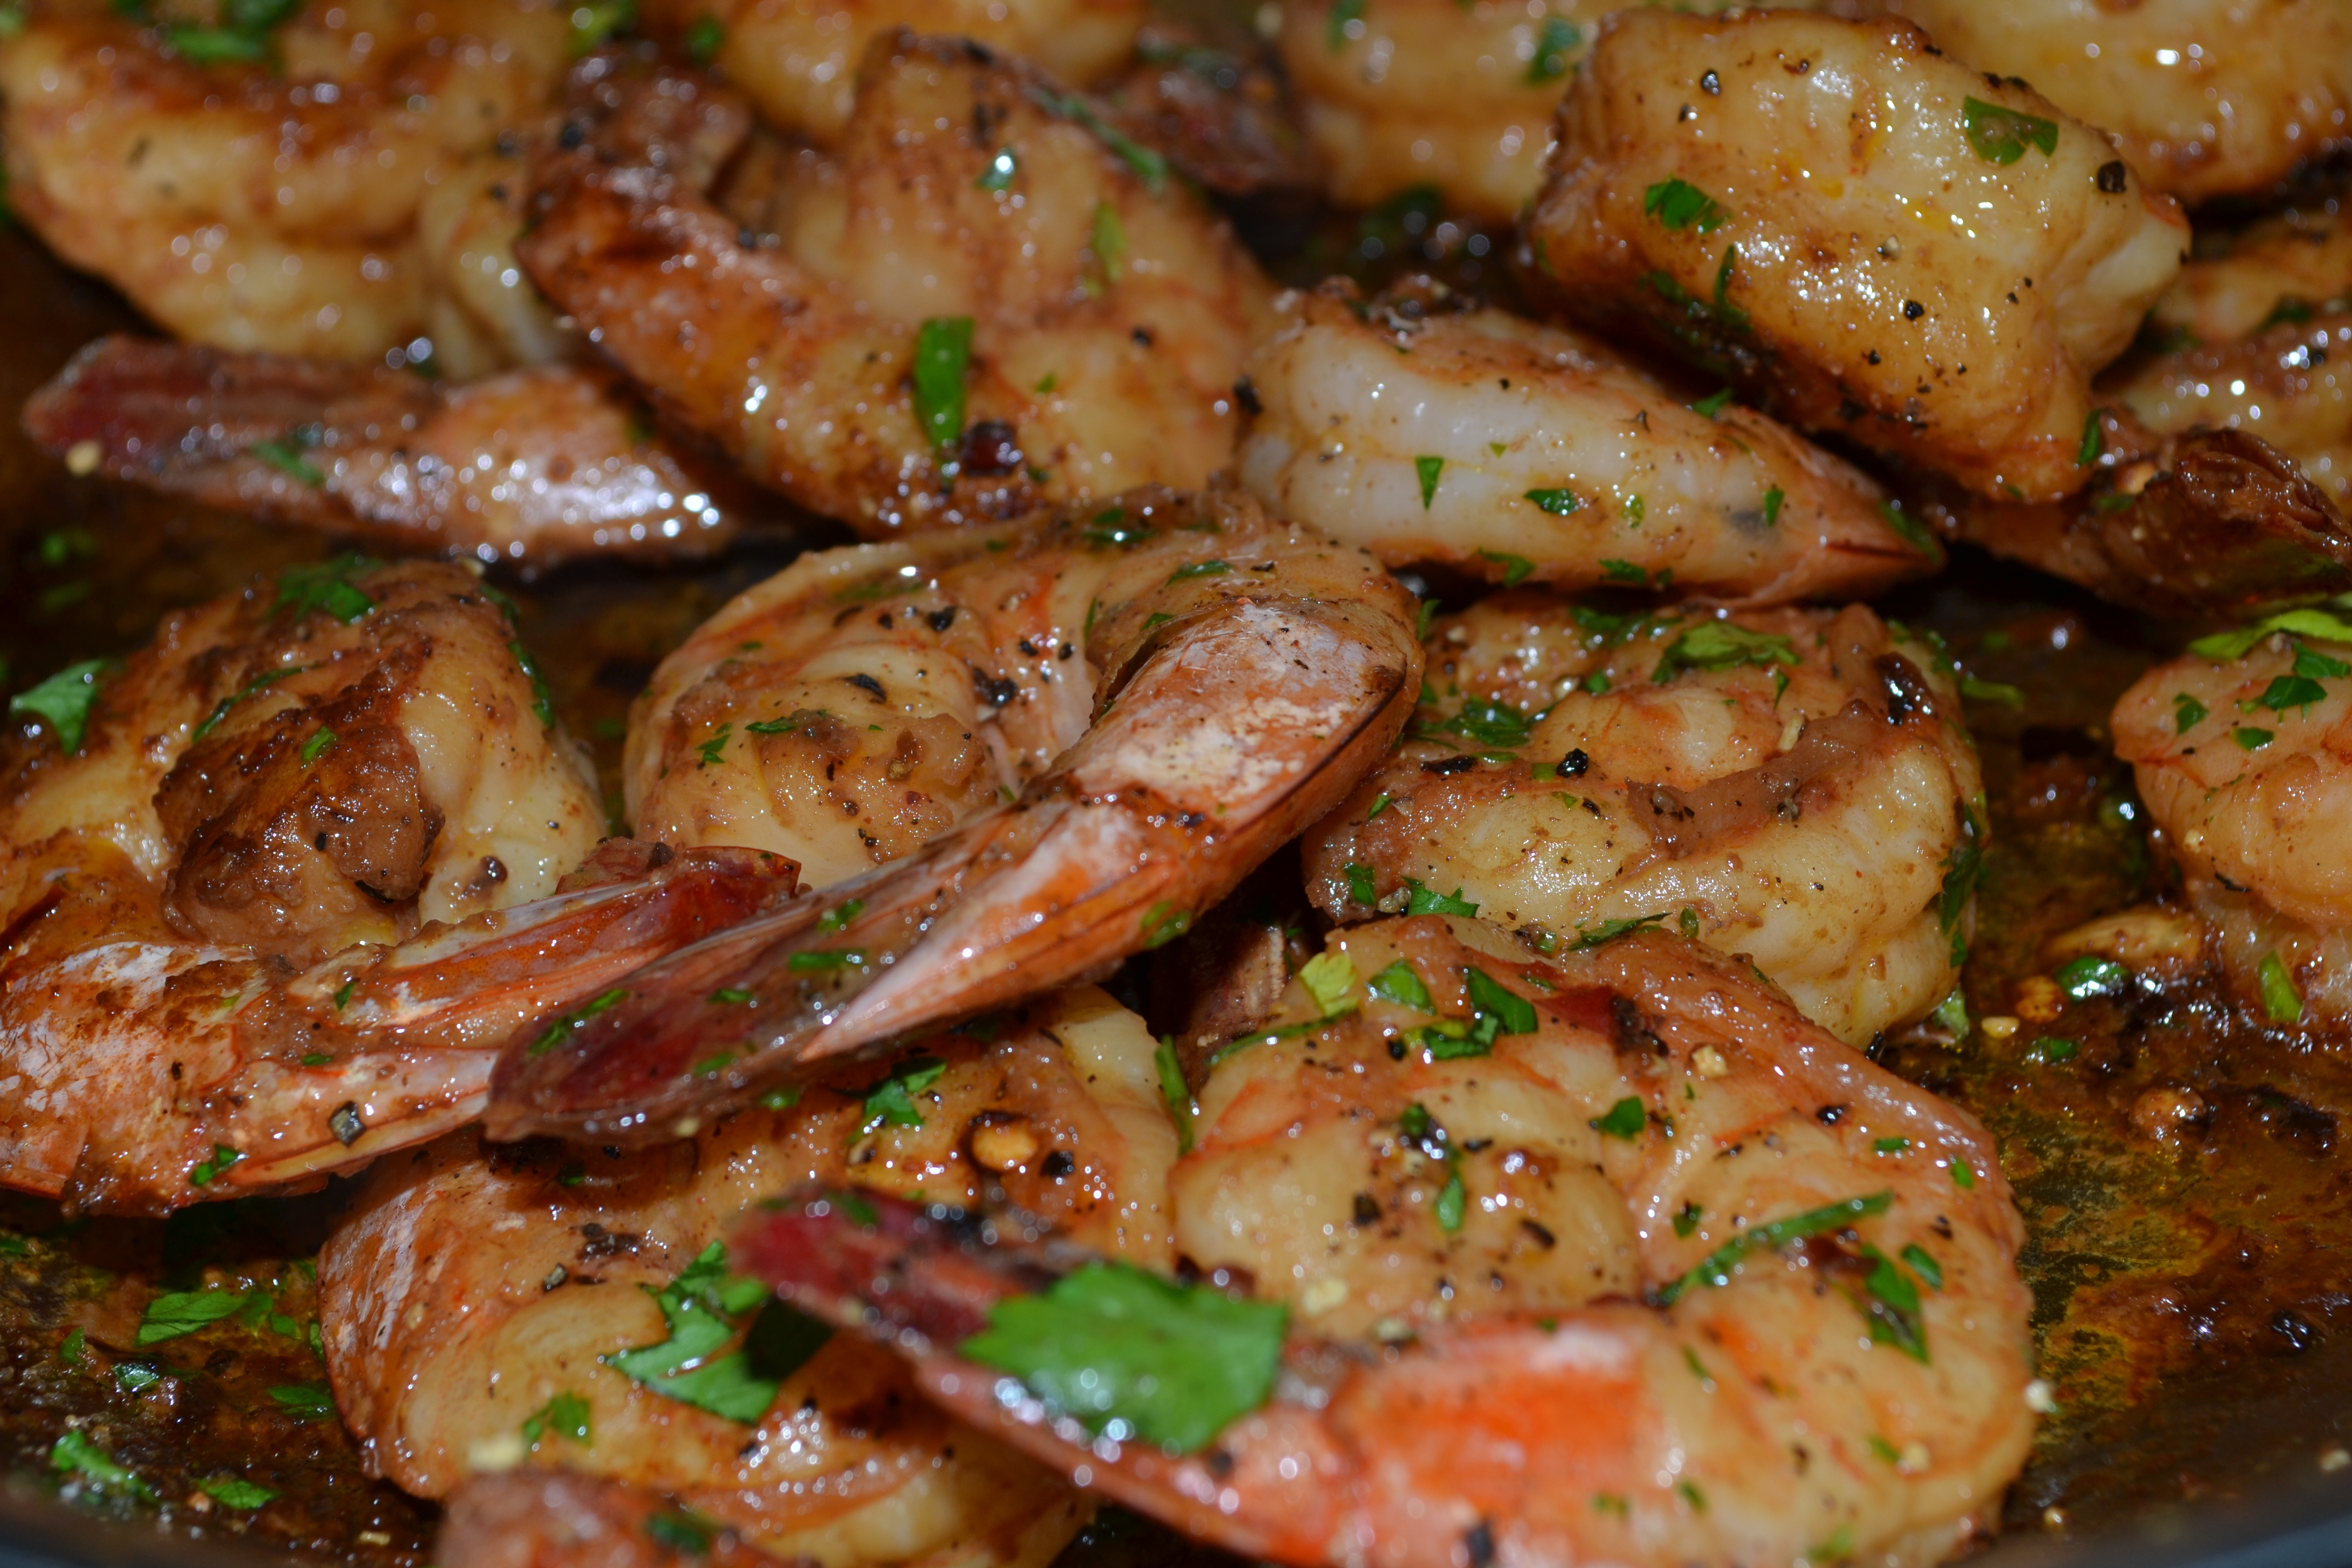 Spicy Sautéed Shrimp with Garlic, Lemon and White Wine | Gourmet ...